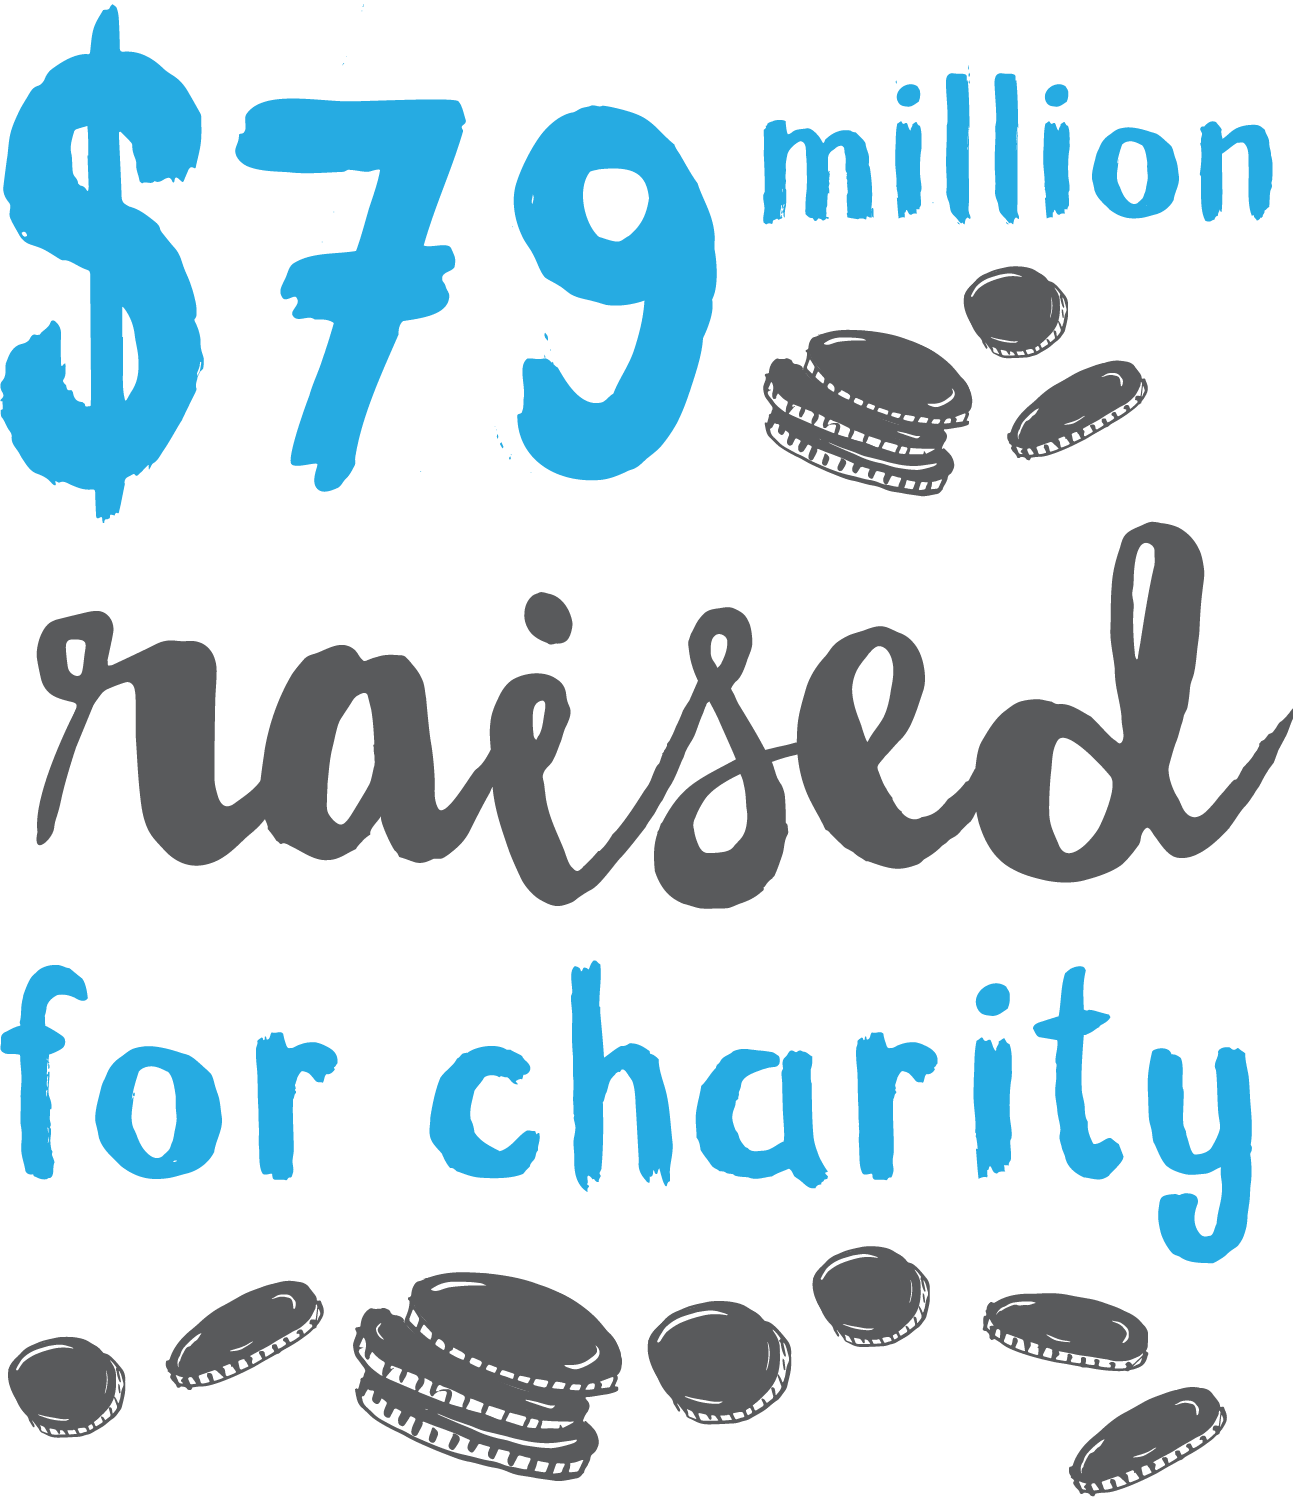 $79 million raised for charity